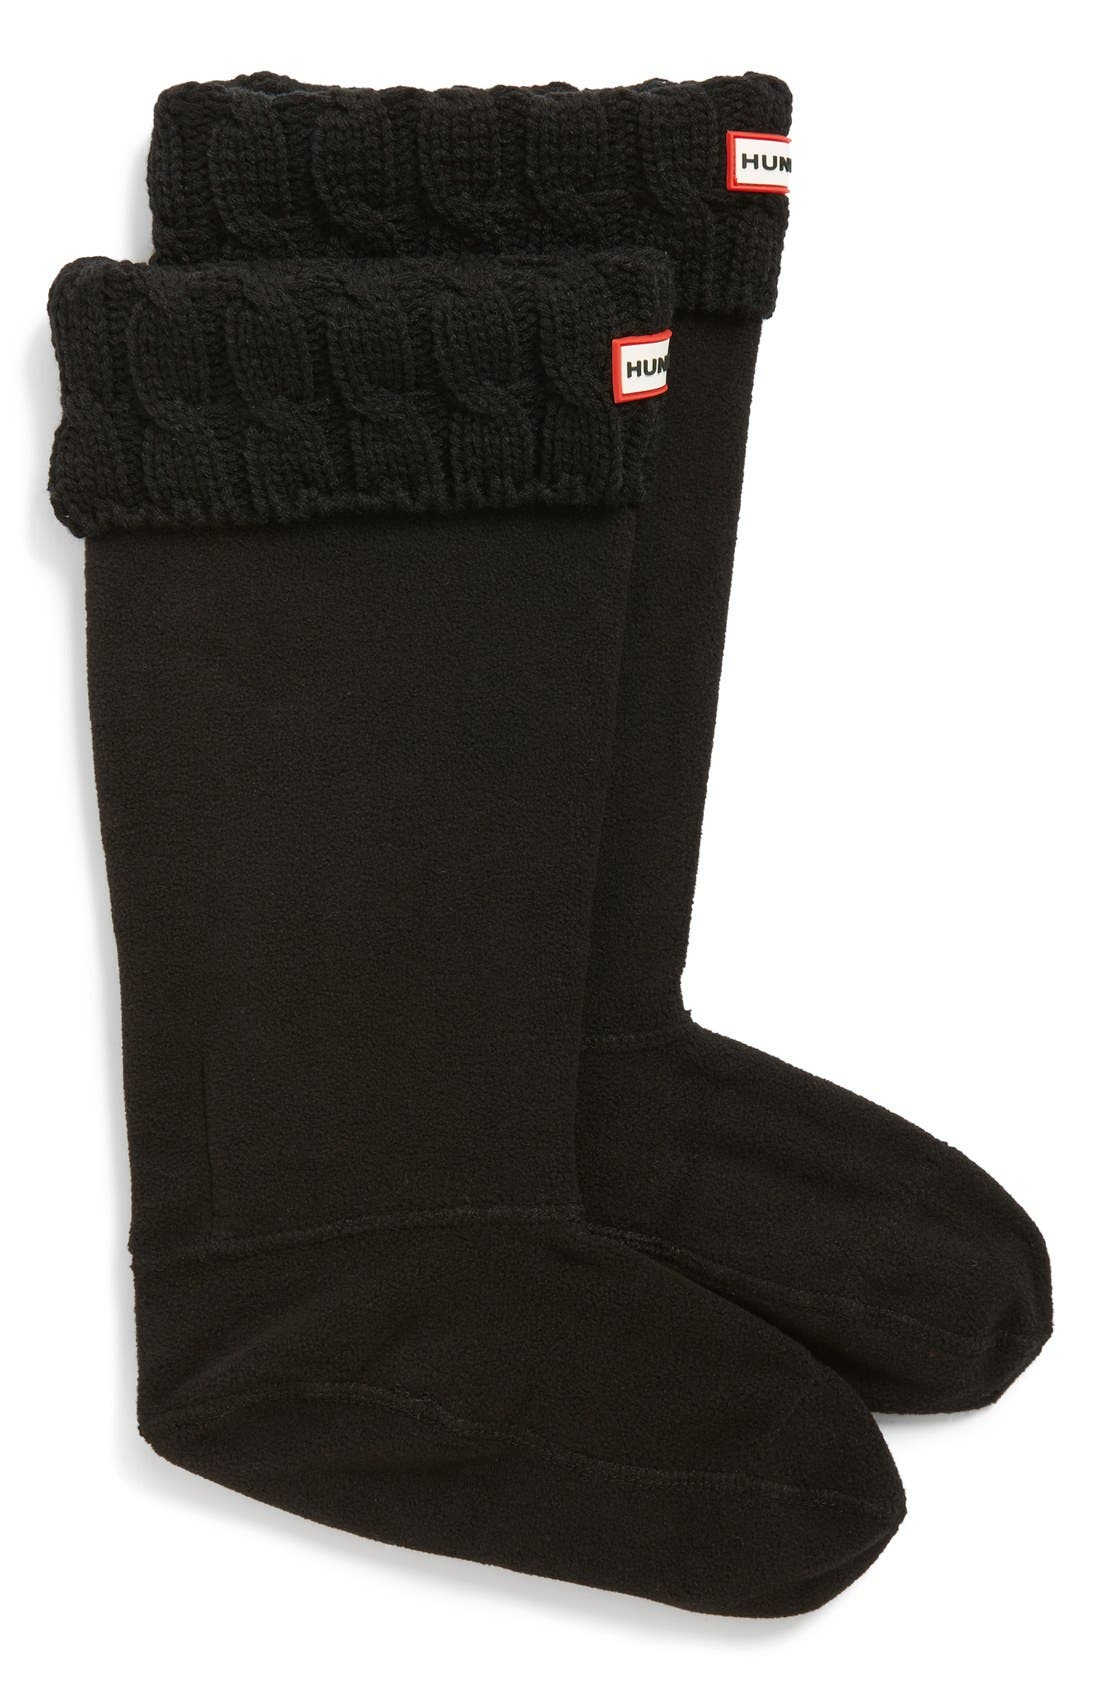 HUNTER Original Tall Cable Knit Cuff Welly Boot Socks, Main, color, BLACK